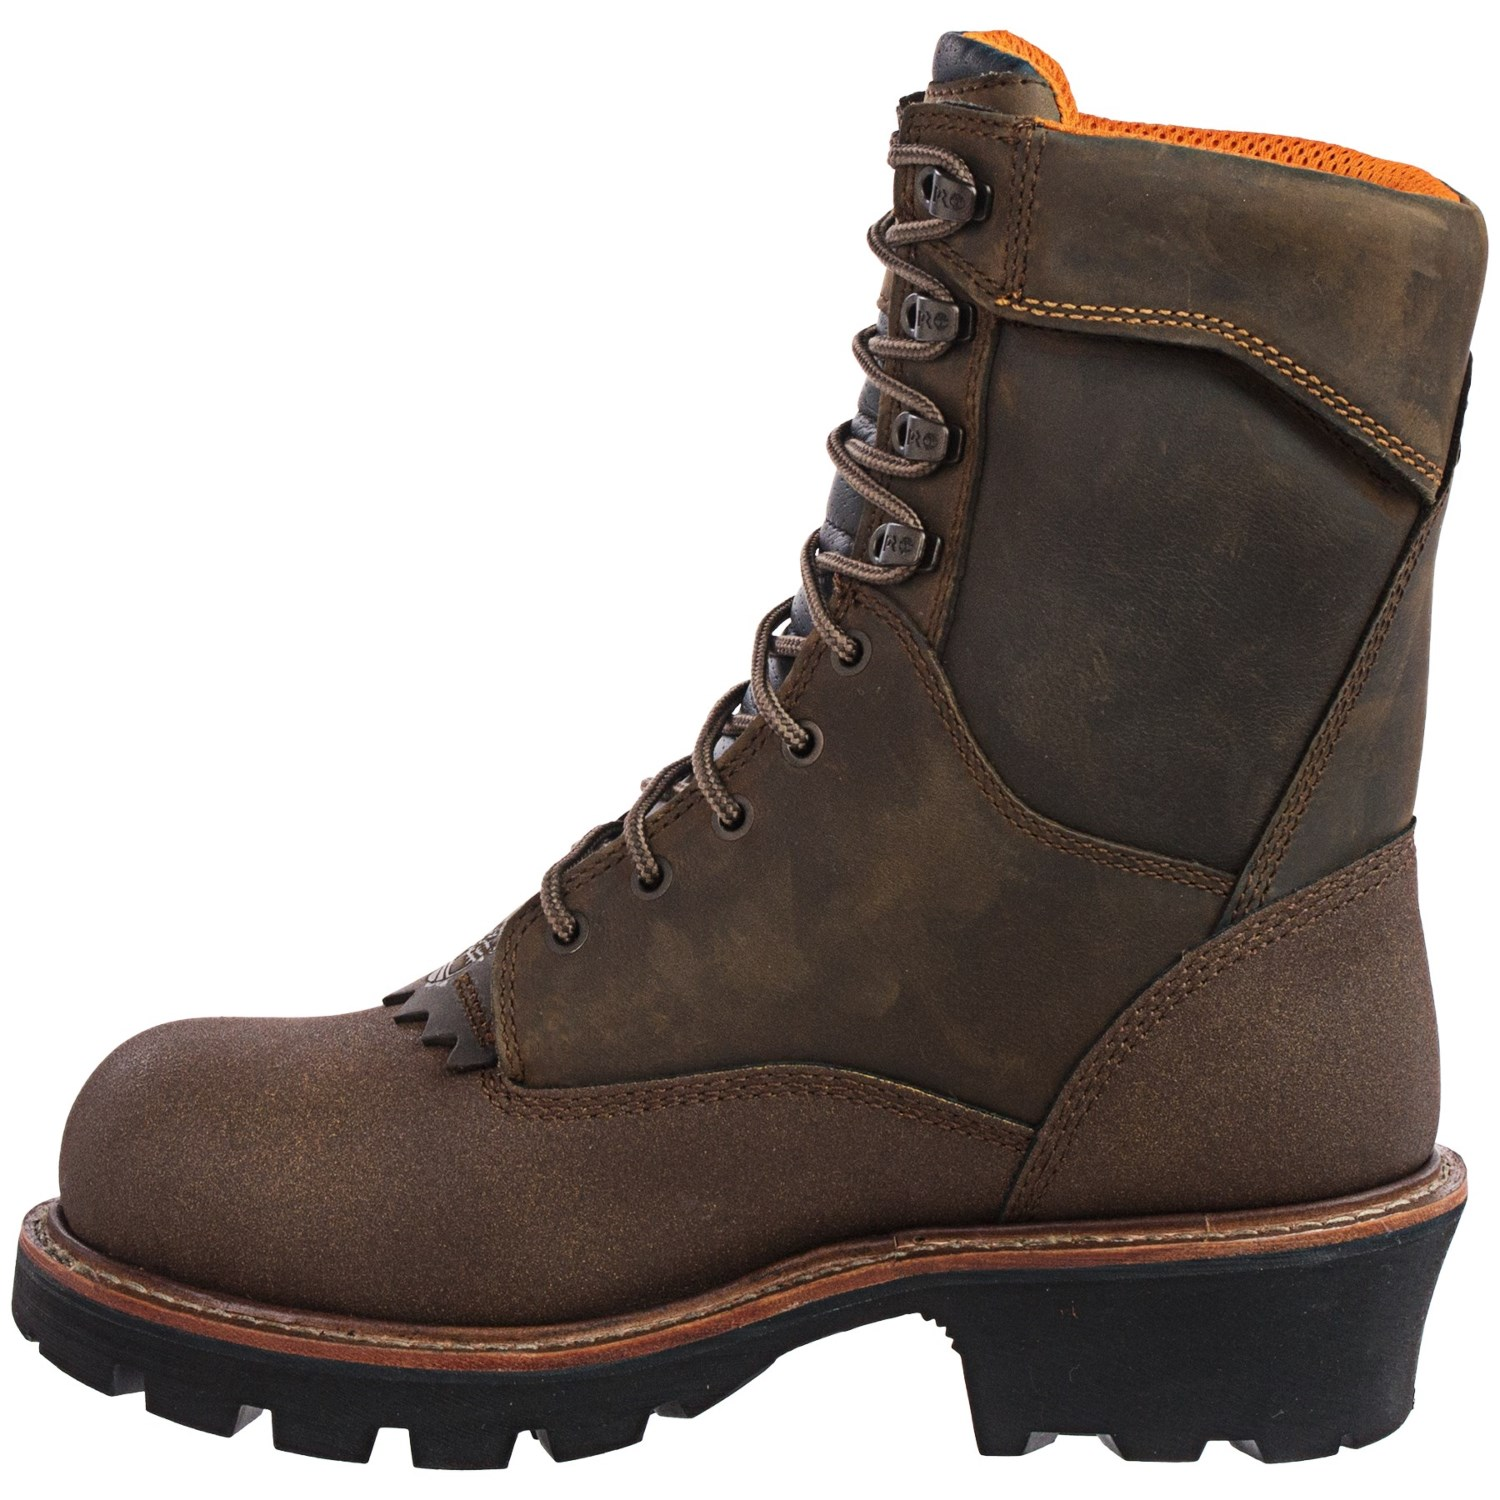 Excellent Nike Work Boots Reviews For 2018 Collection (October-2018) - Work Boots Review